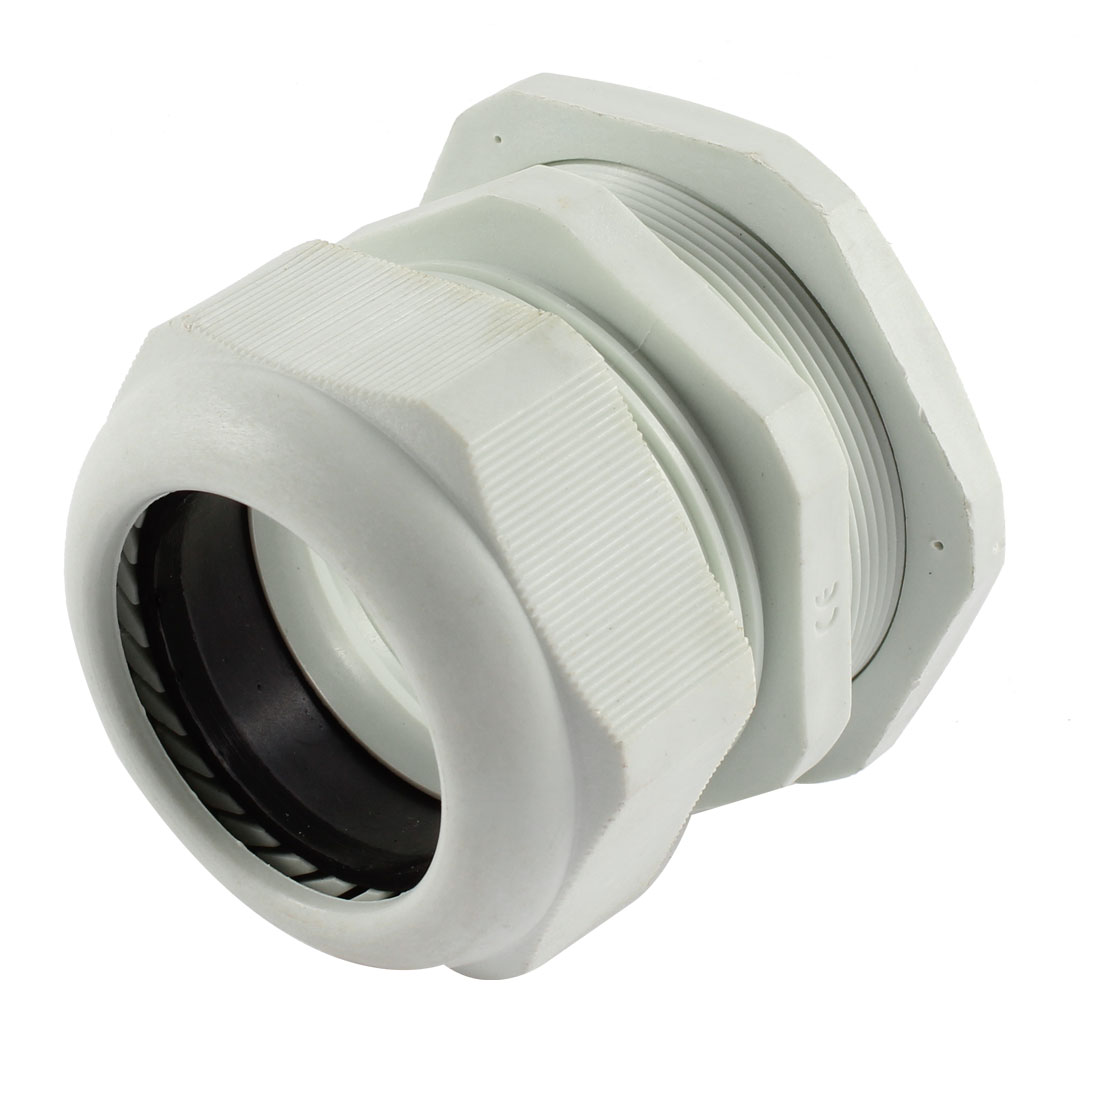 White Plastic M63x1.5 37-44mm Wire Connector Waterproof Cable Gland